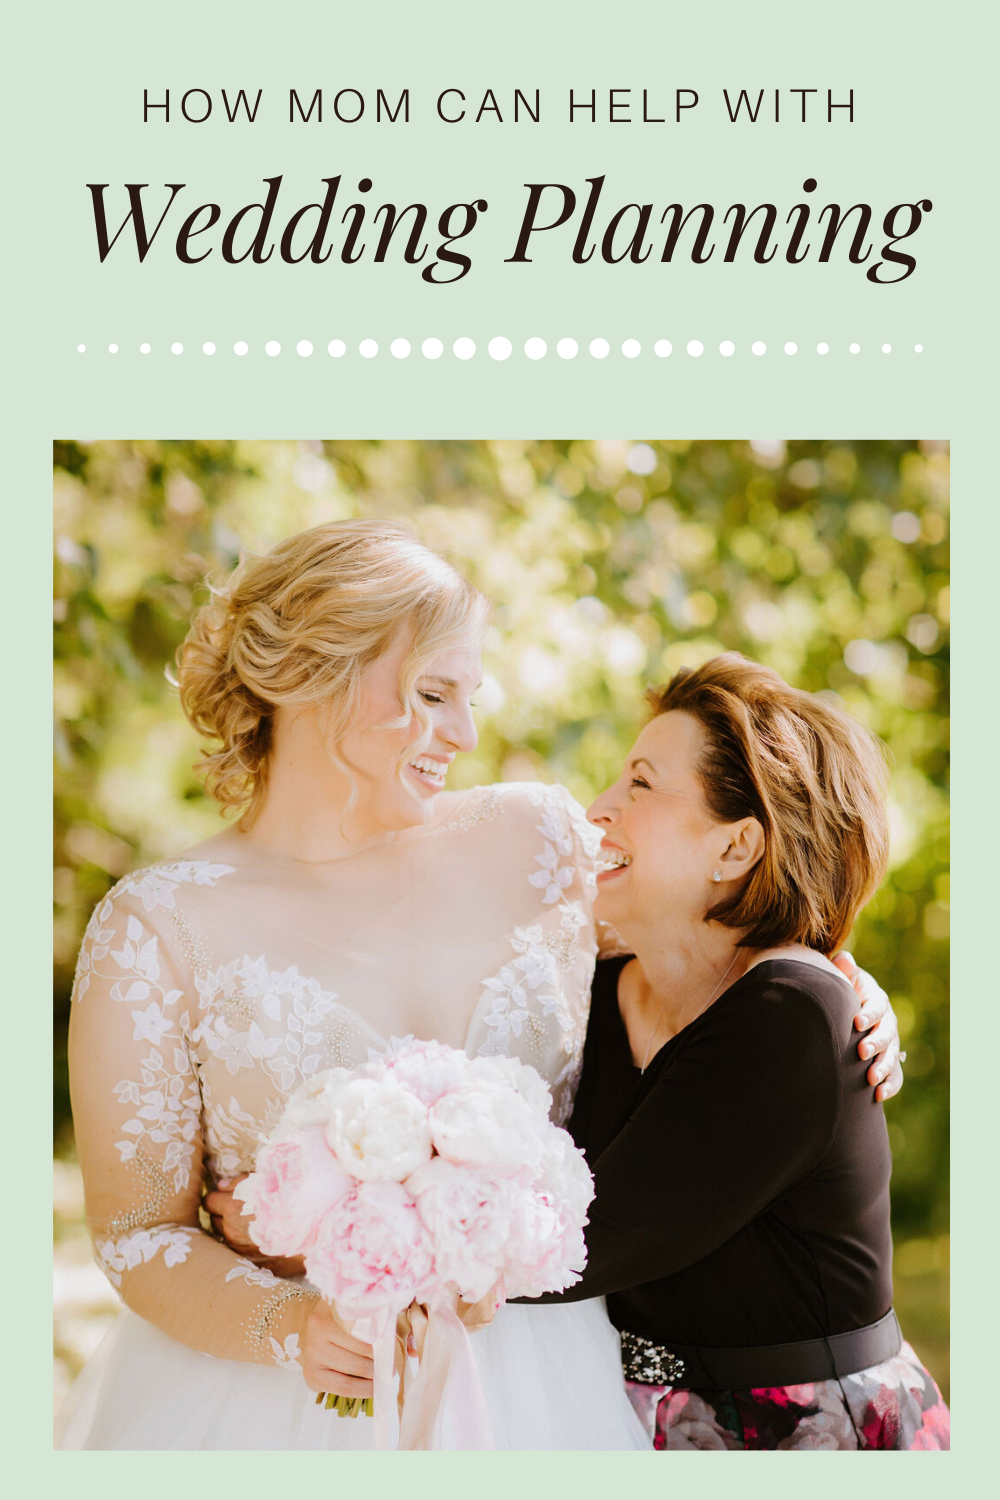 How mom can help with wedding planning - Leah E. Moss Designs - Expert advice for brides with wedding planning tips